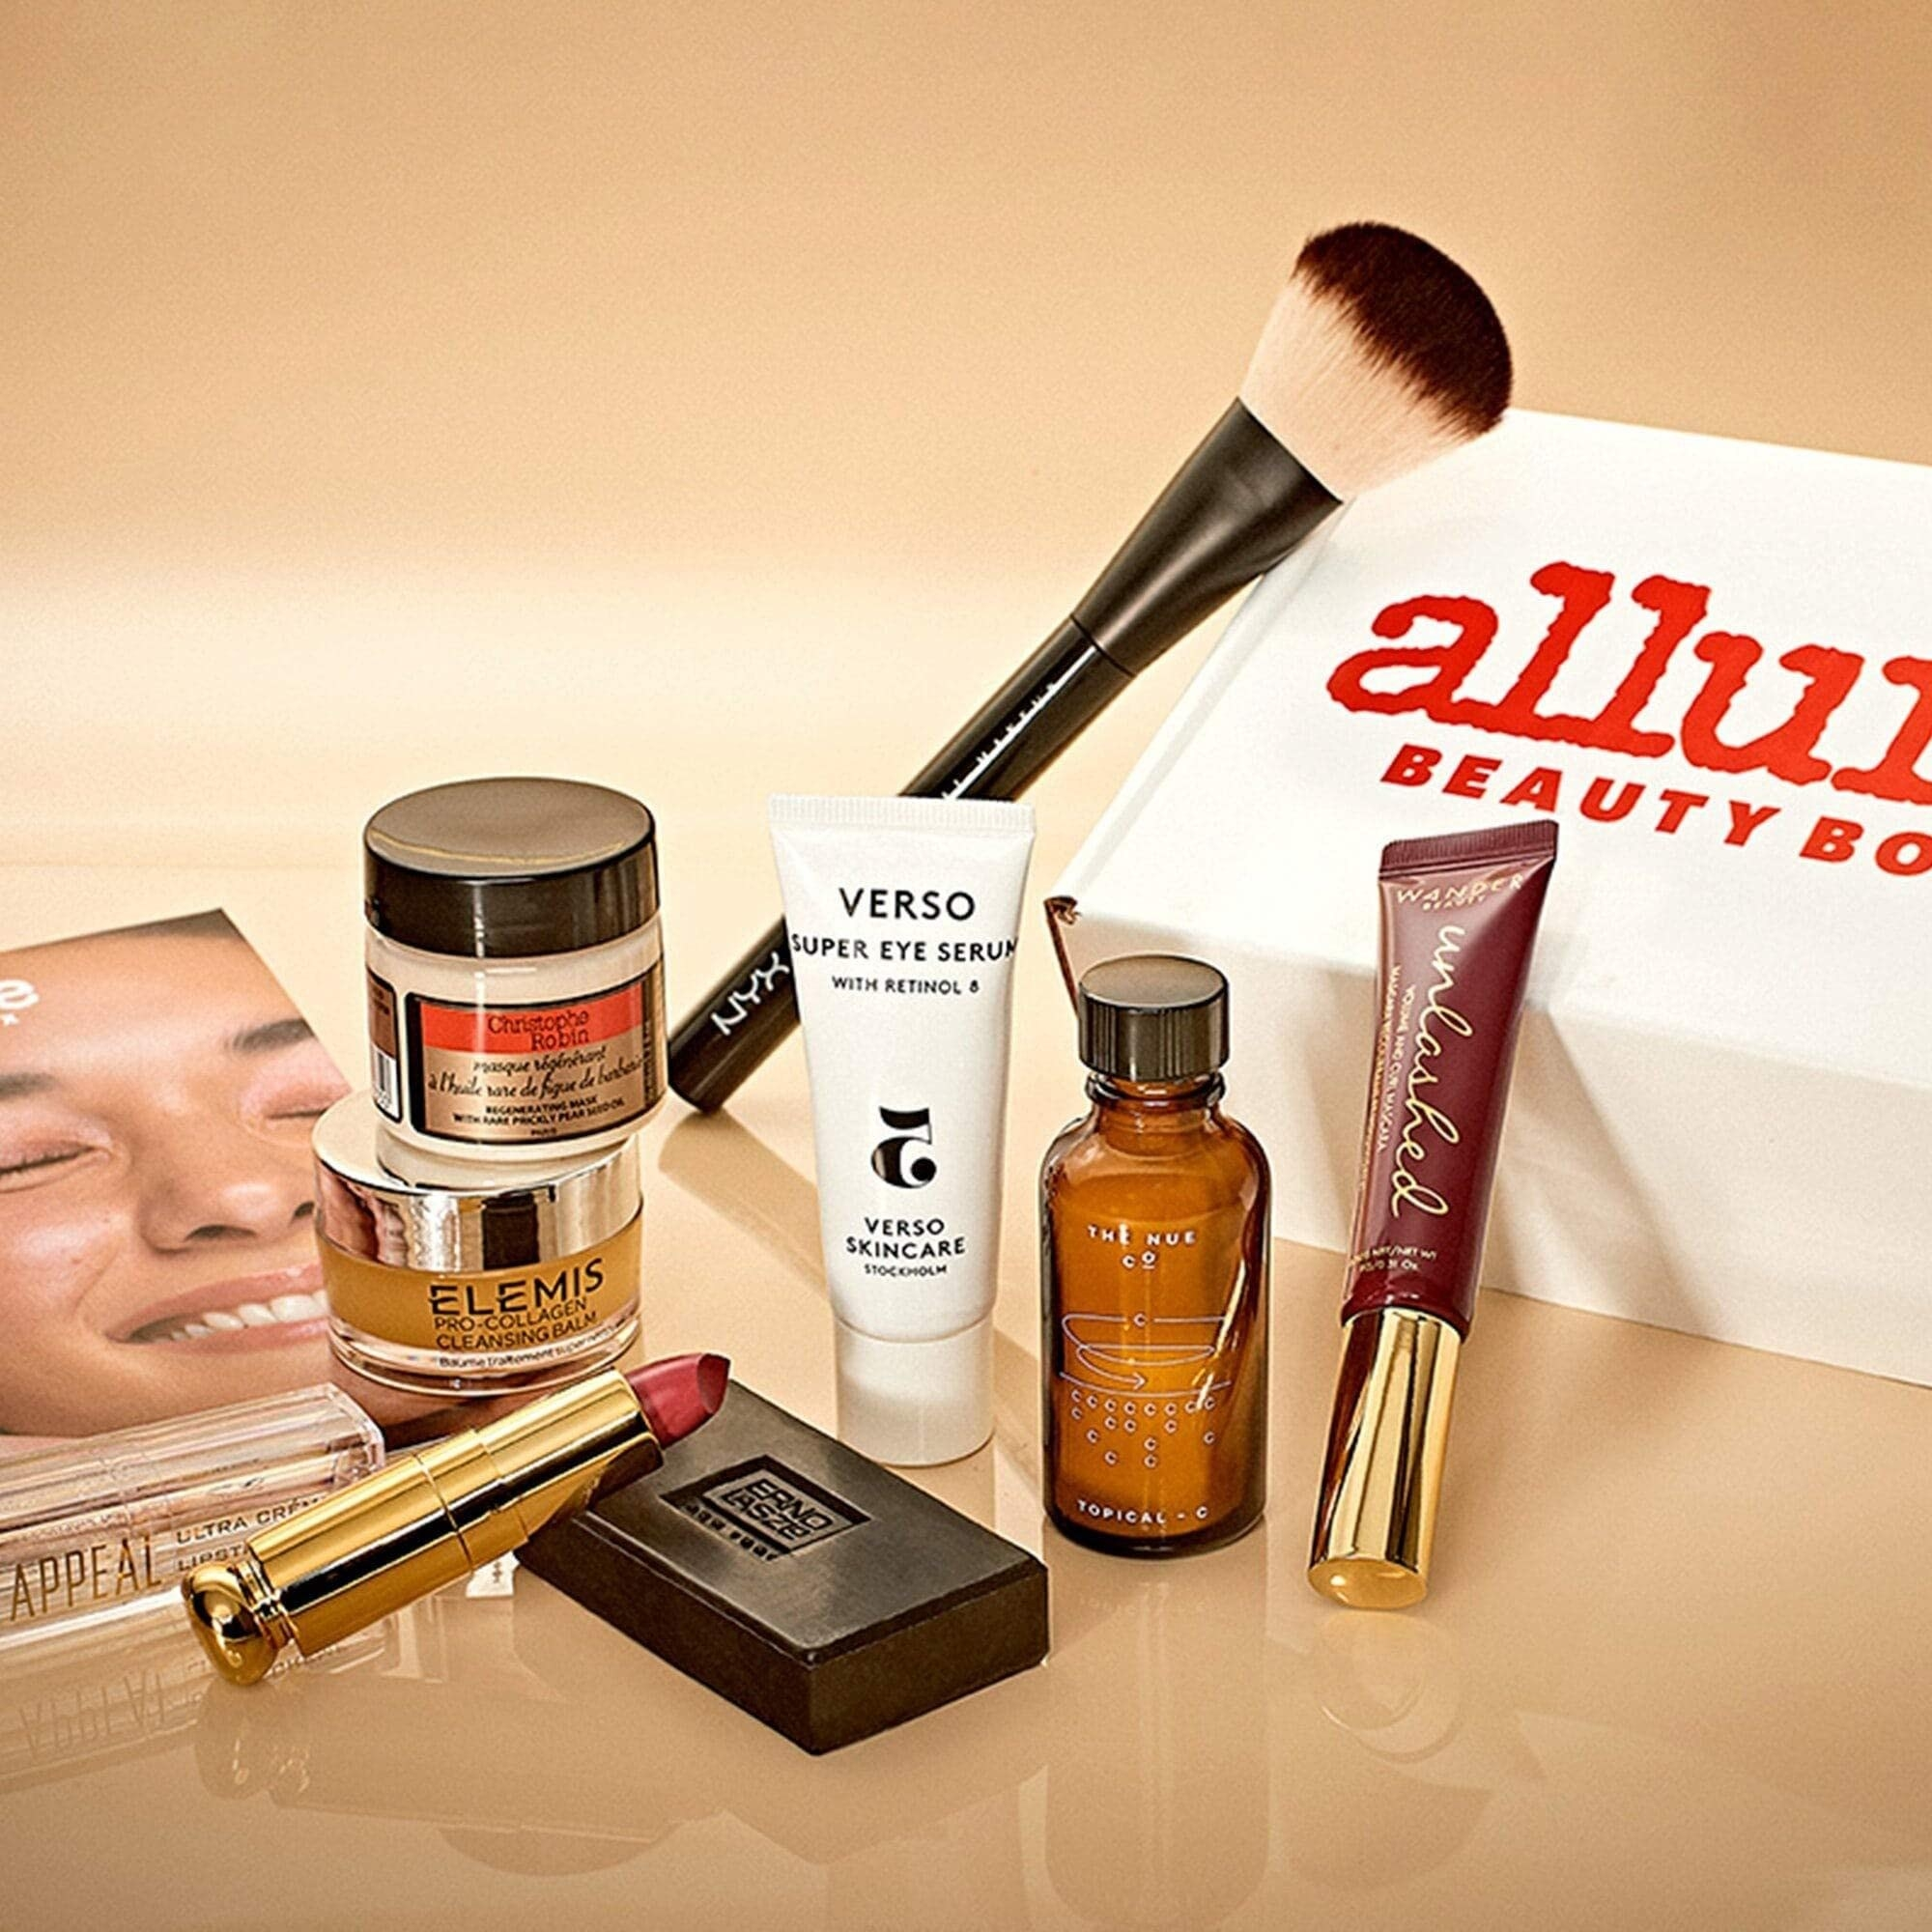 Contents of an allure beauty box with makeup, skincare, and other beauty items